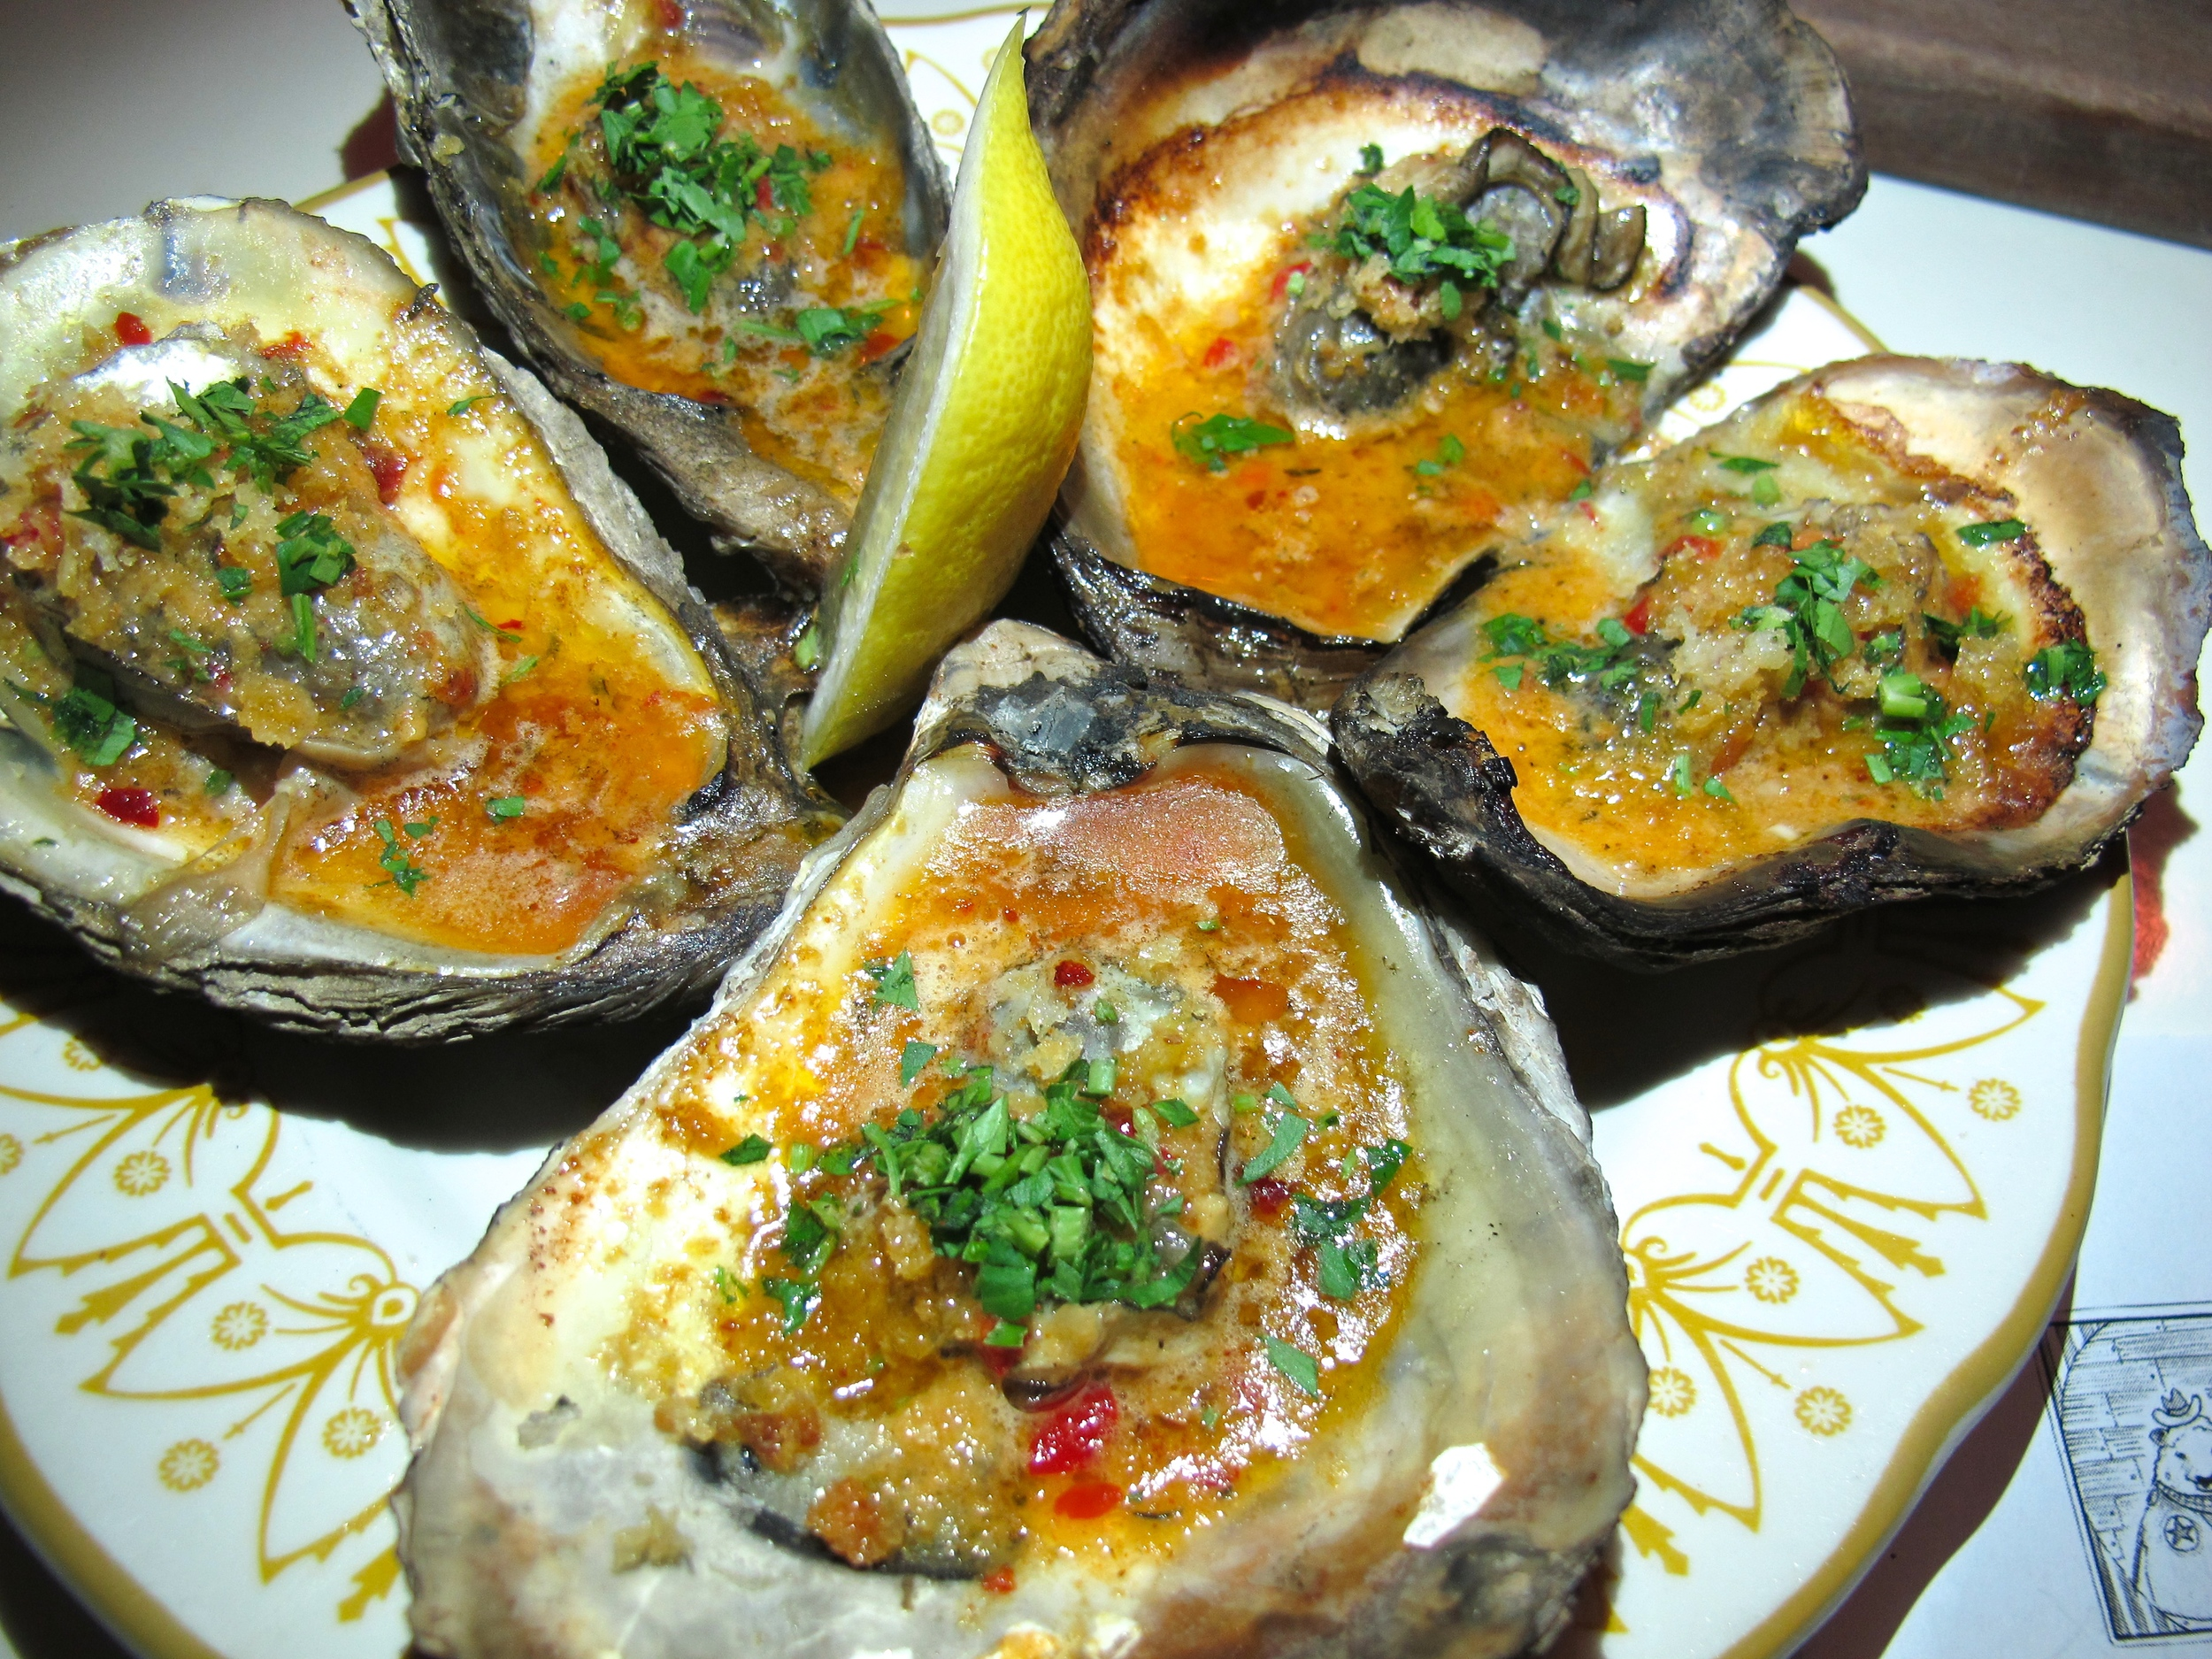 Hart and Hunter barbecued oysters